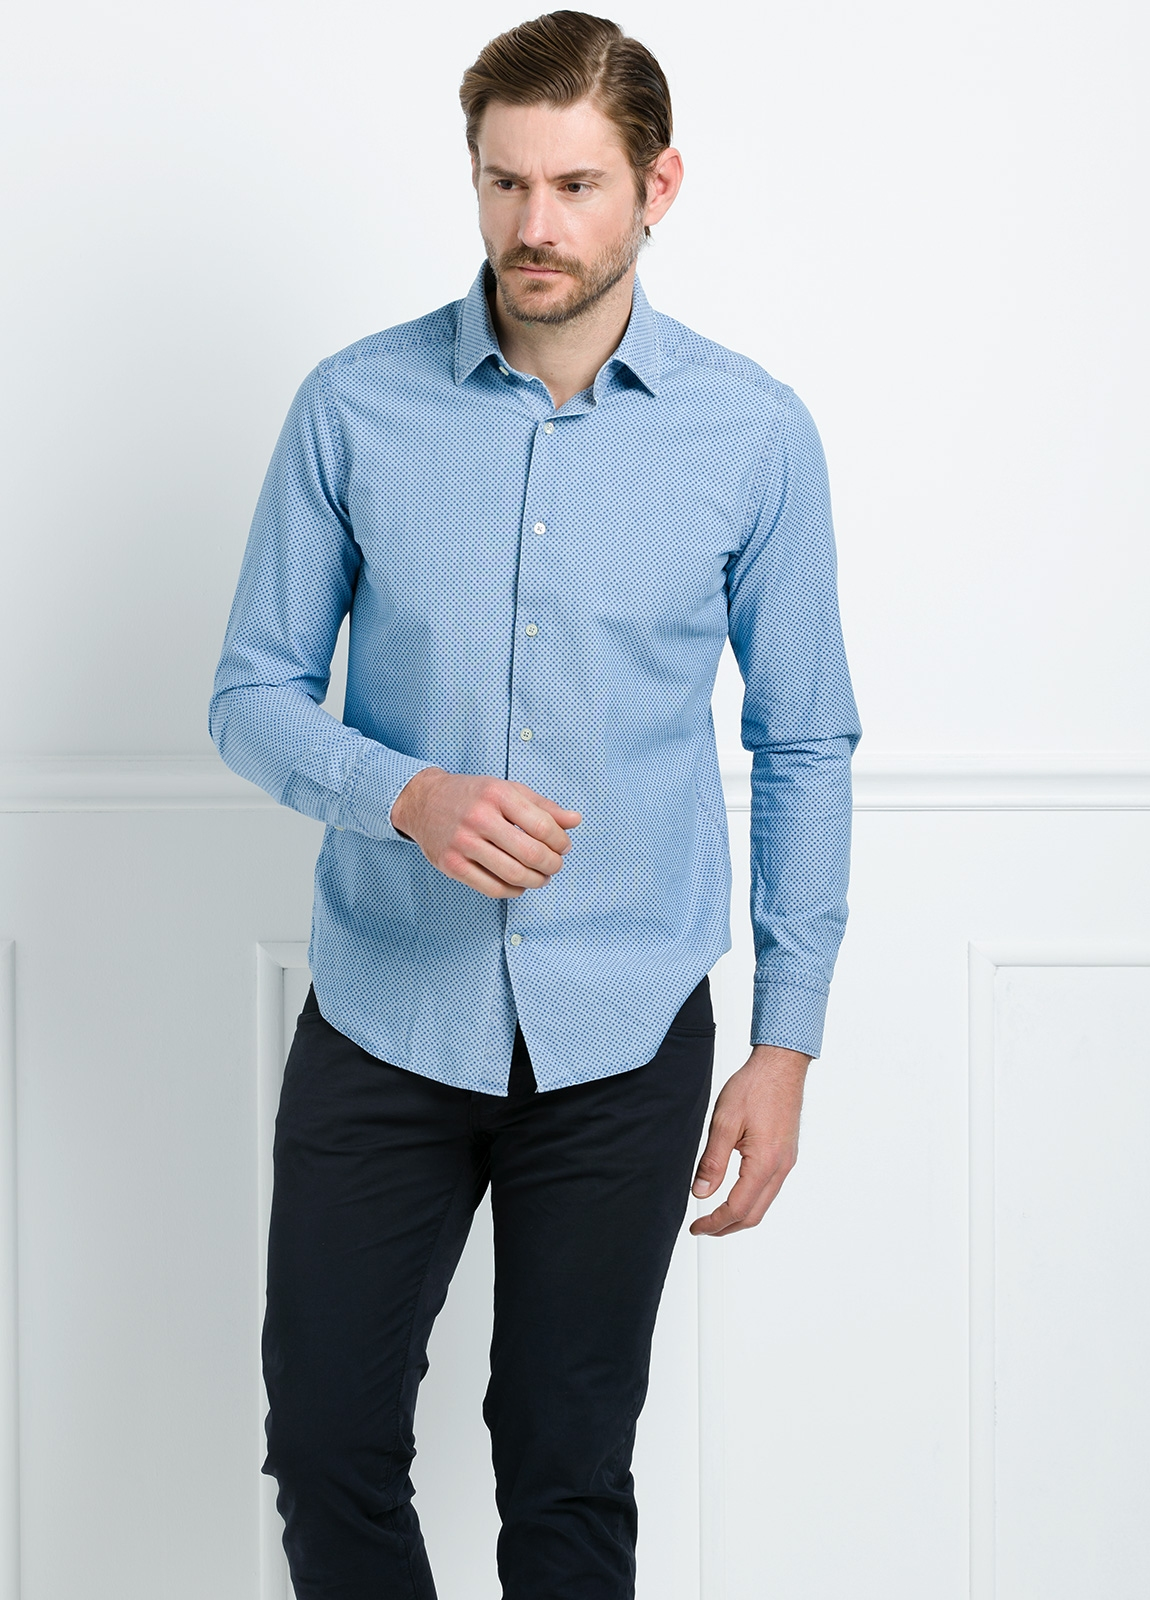 Camisa Leisure Wear SLIM FIT modelo PORTO estampado topito color azul. 100% Algodón. - Ítem2